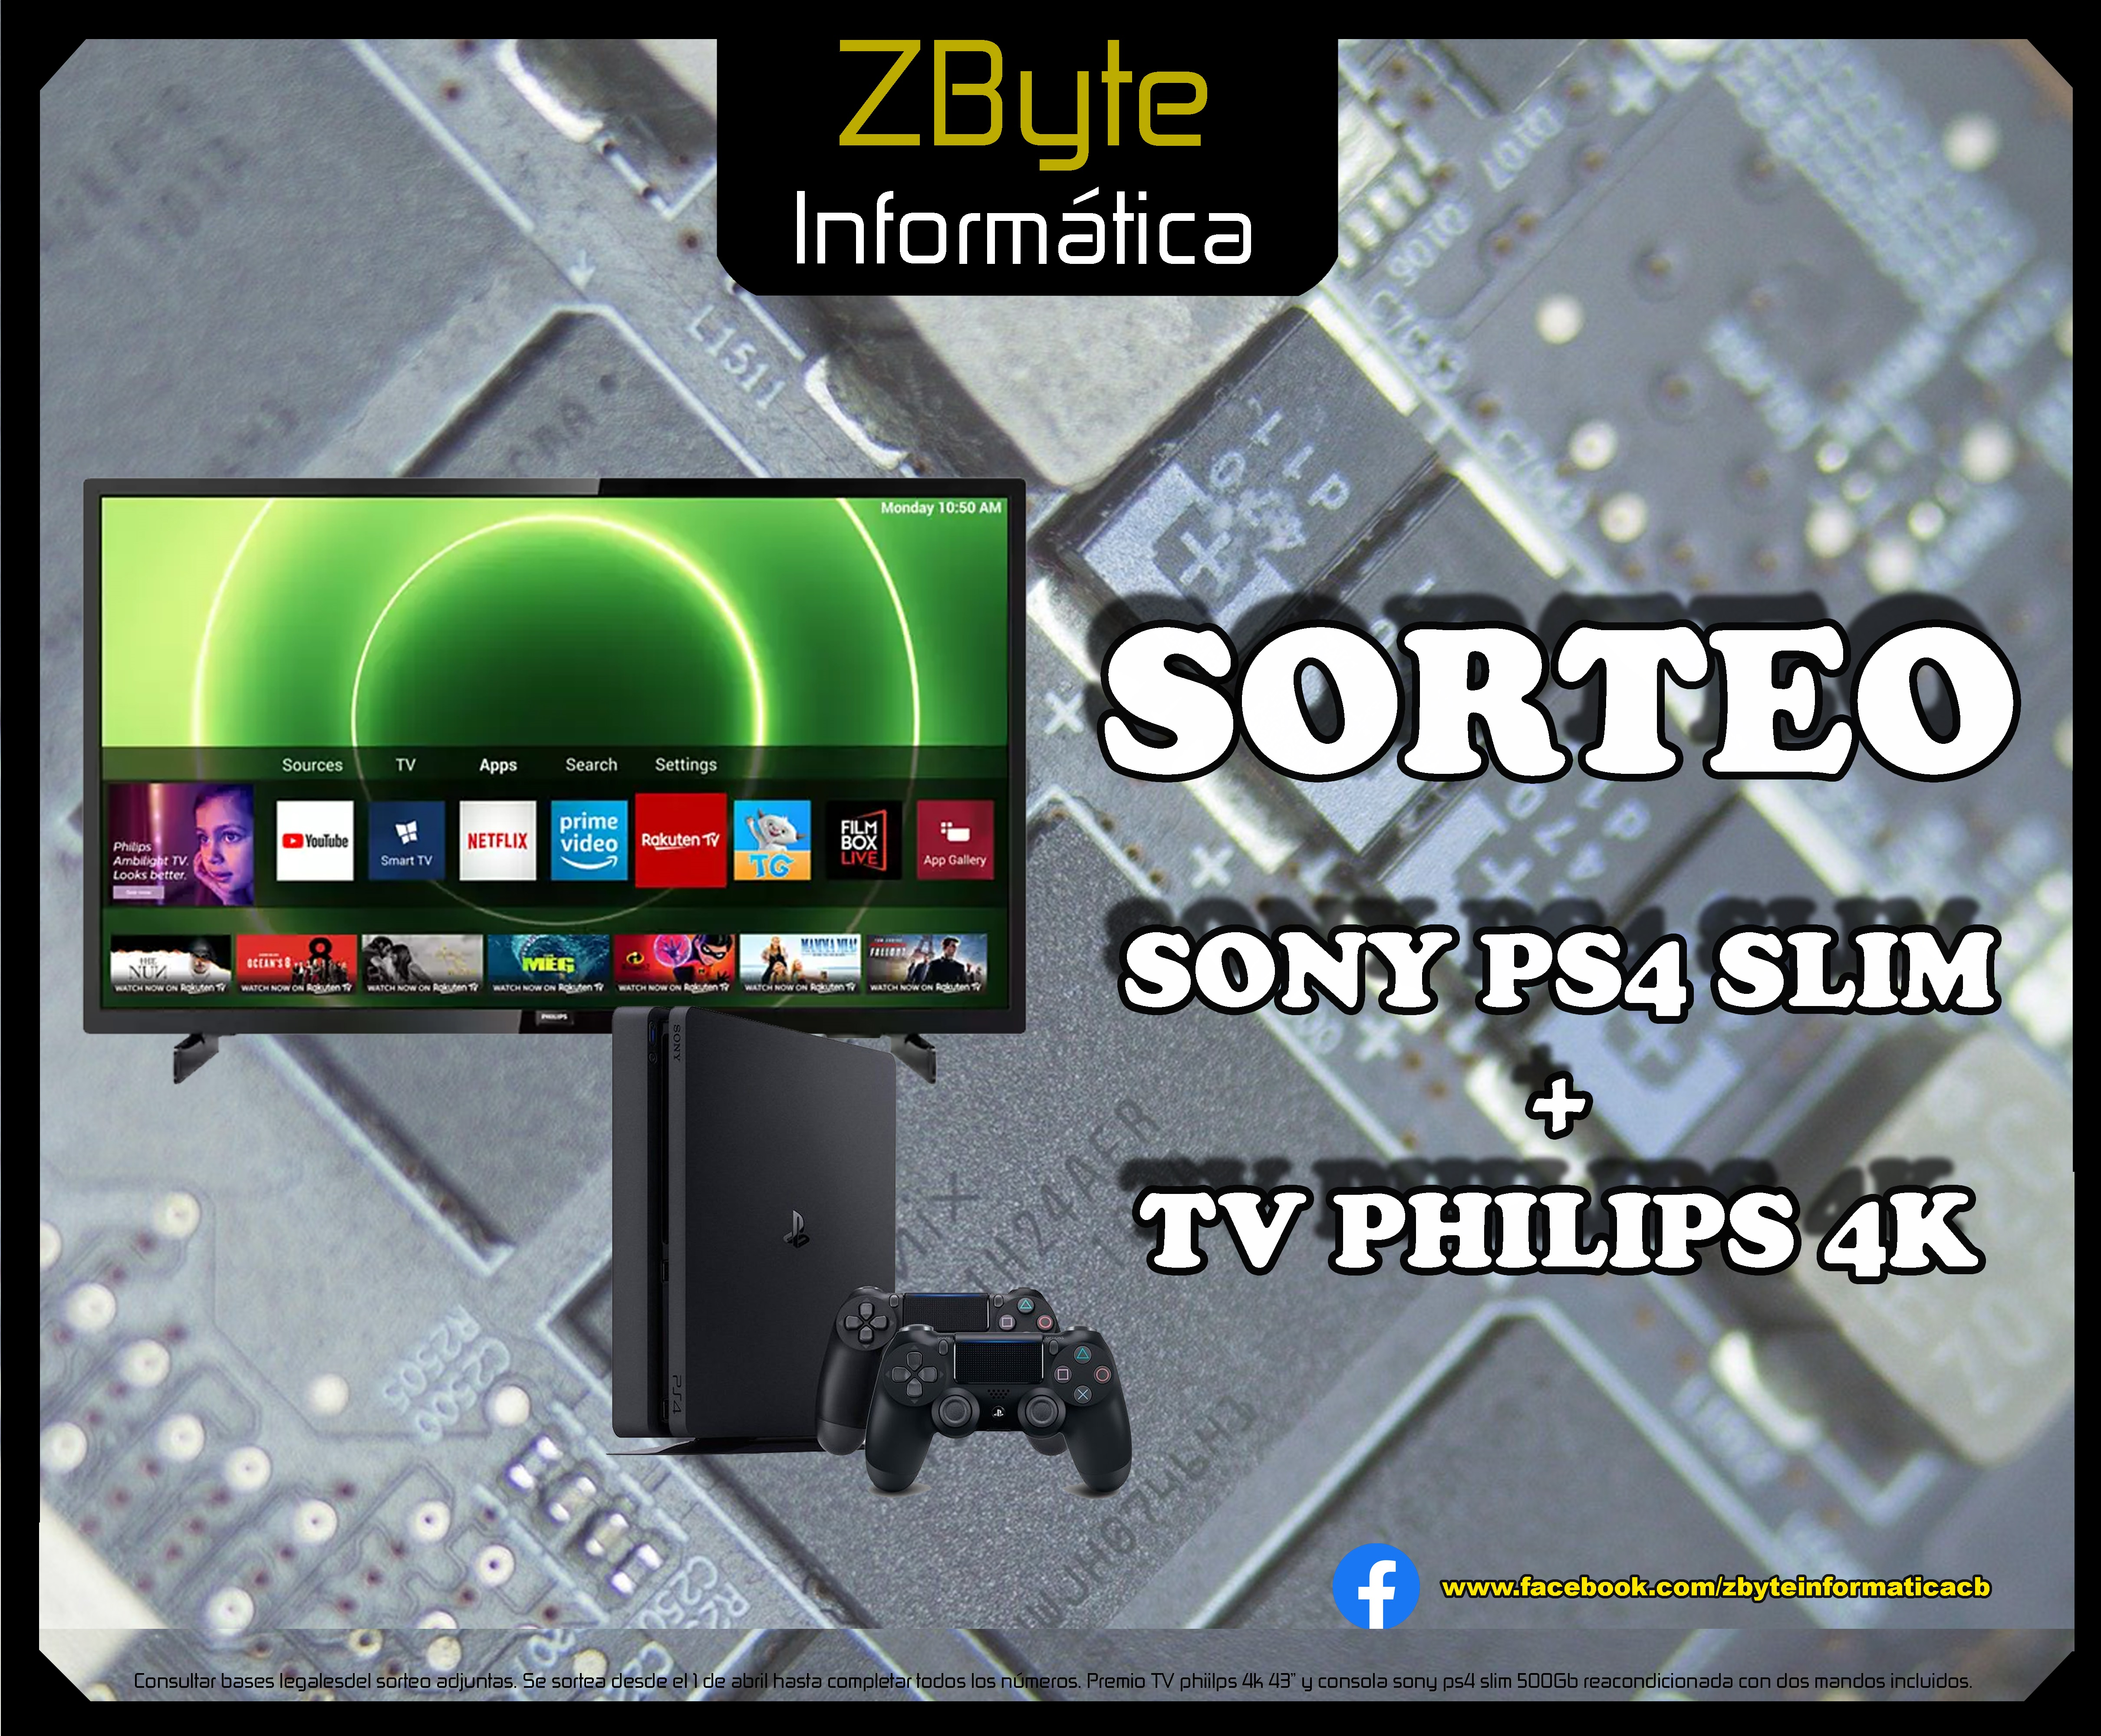 Ver Black Friday en ZByte Informatica